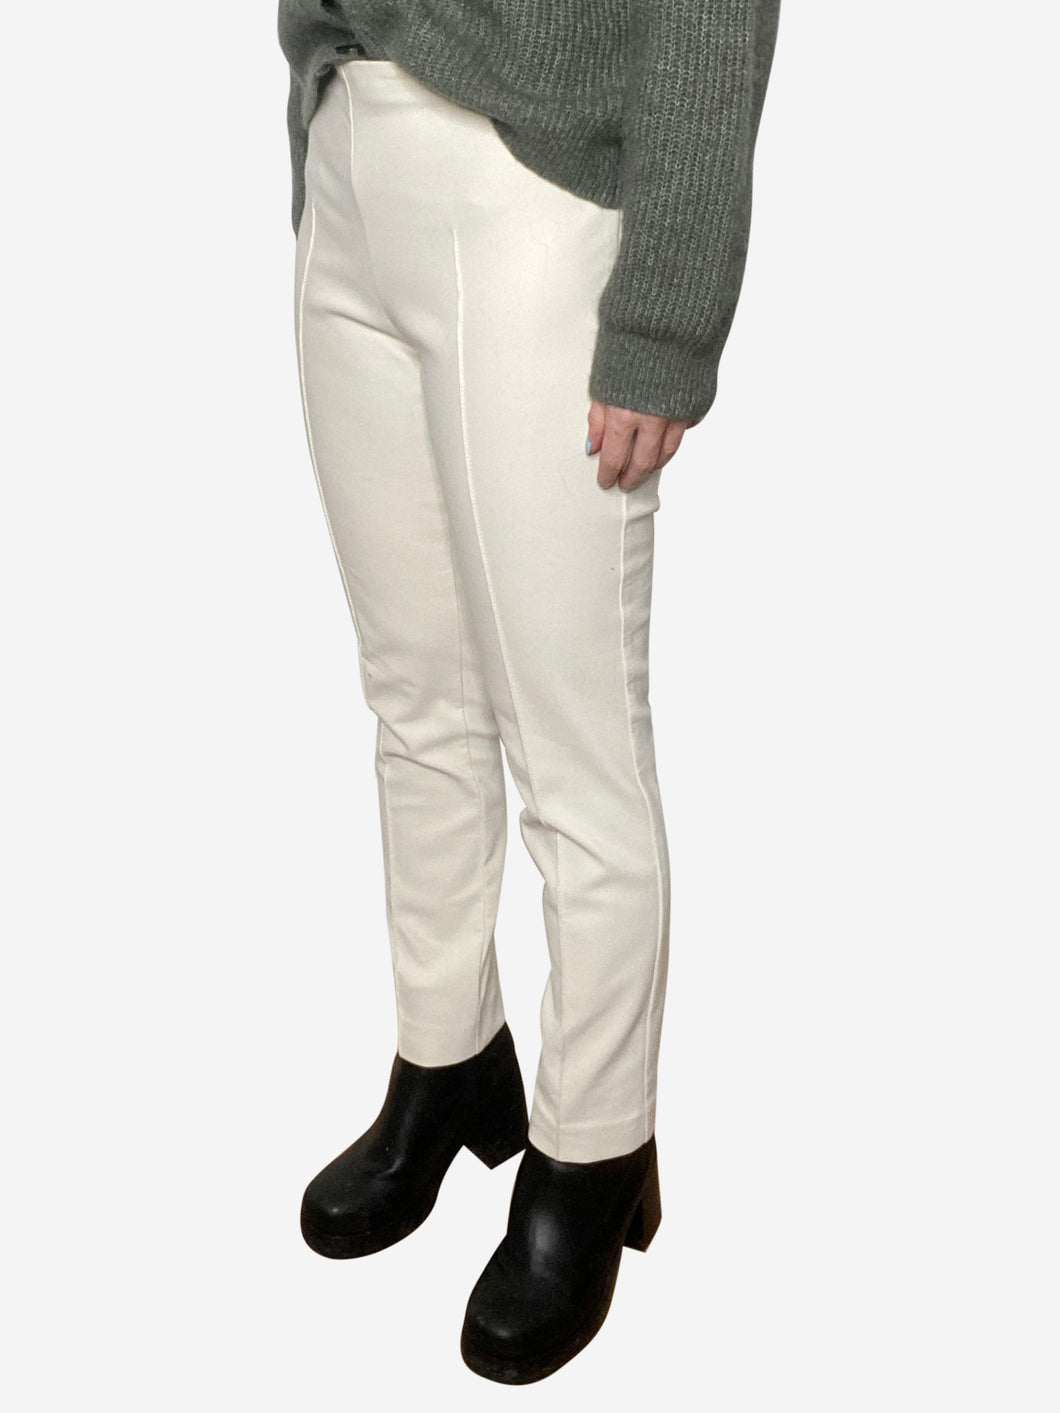 Cream straight leg trousers with front seam - size S